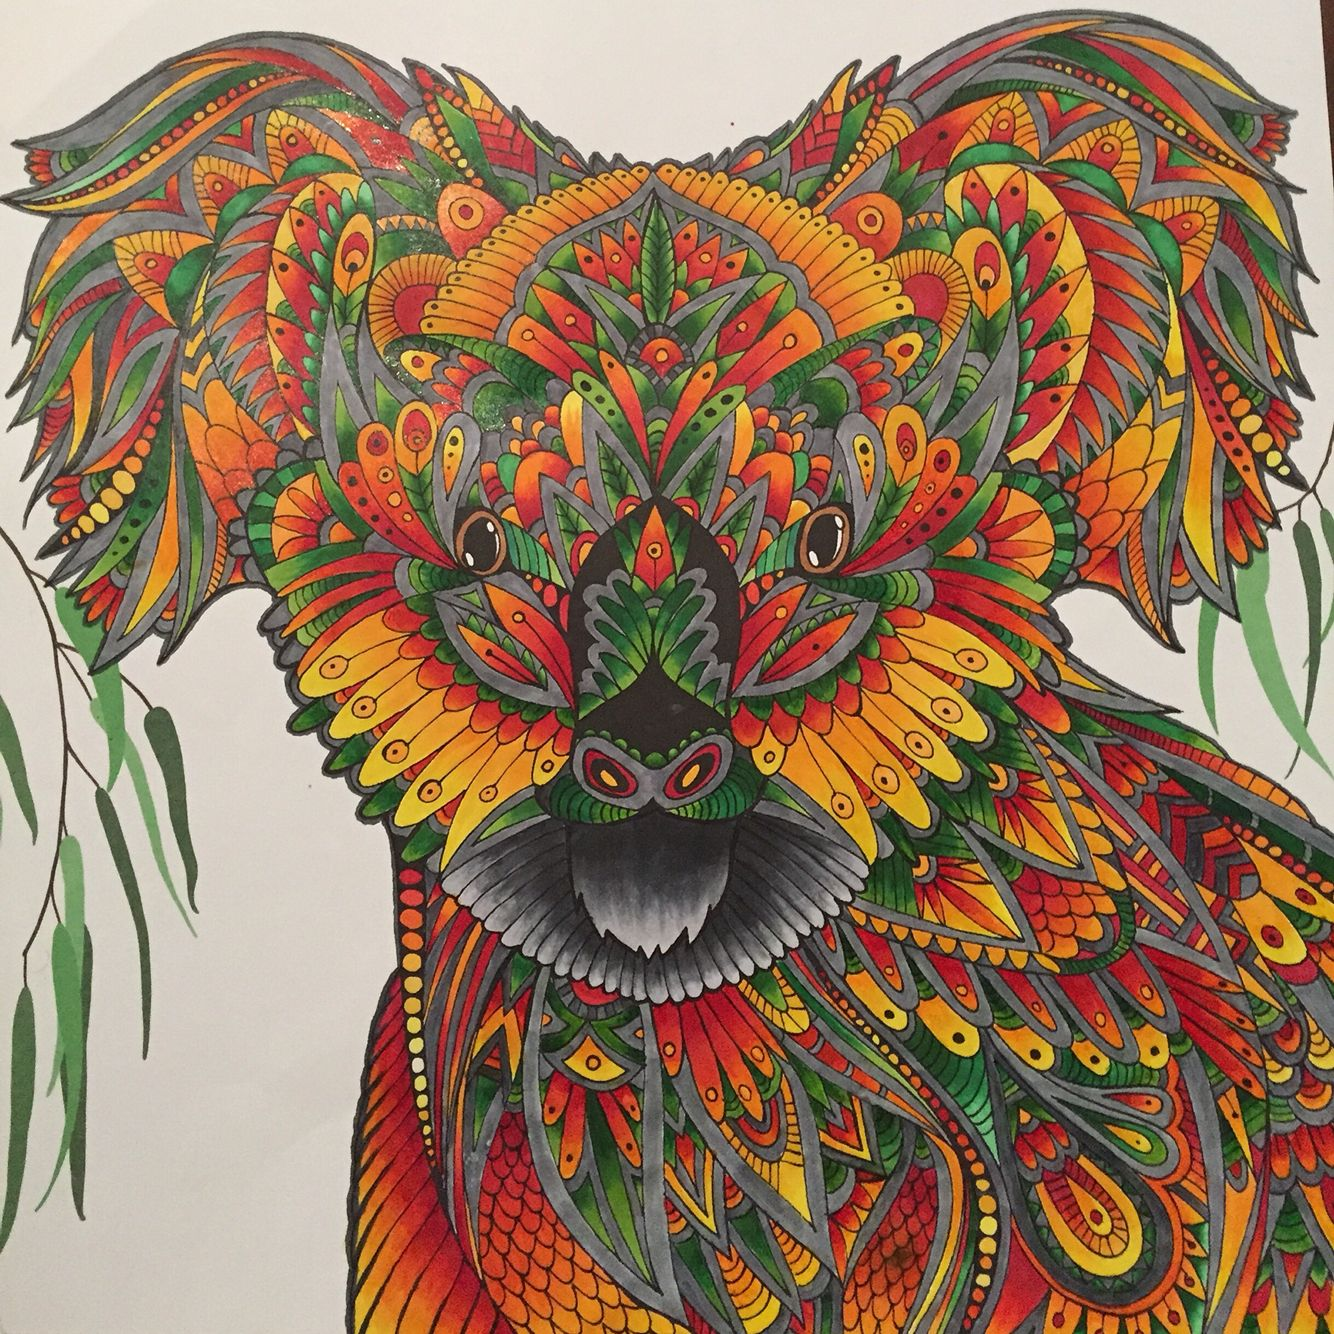 Art therapy coloring book and pencils - The Menagerie Koala Using Copic Markers Koala Illustrationadult Coloringcoloring Bookscopic Markerskoalasart Therapypencil